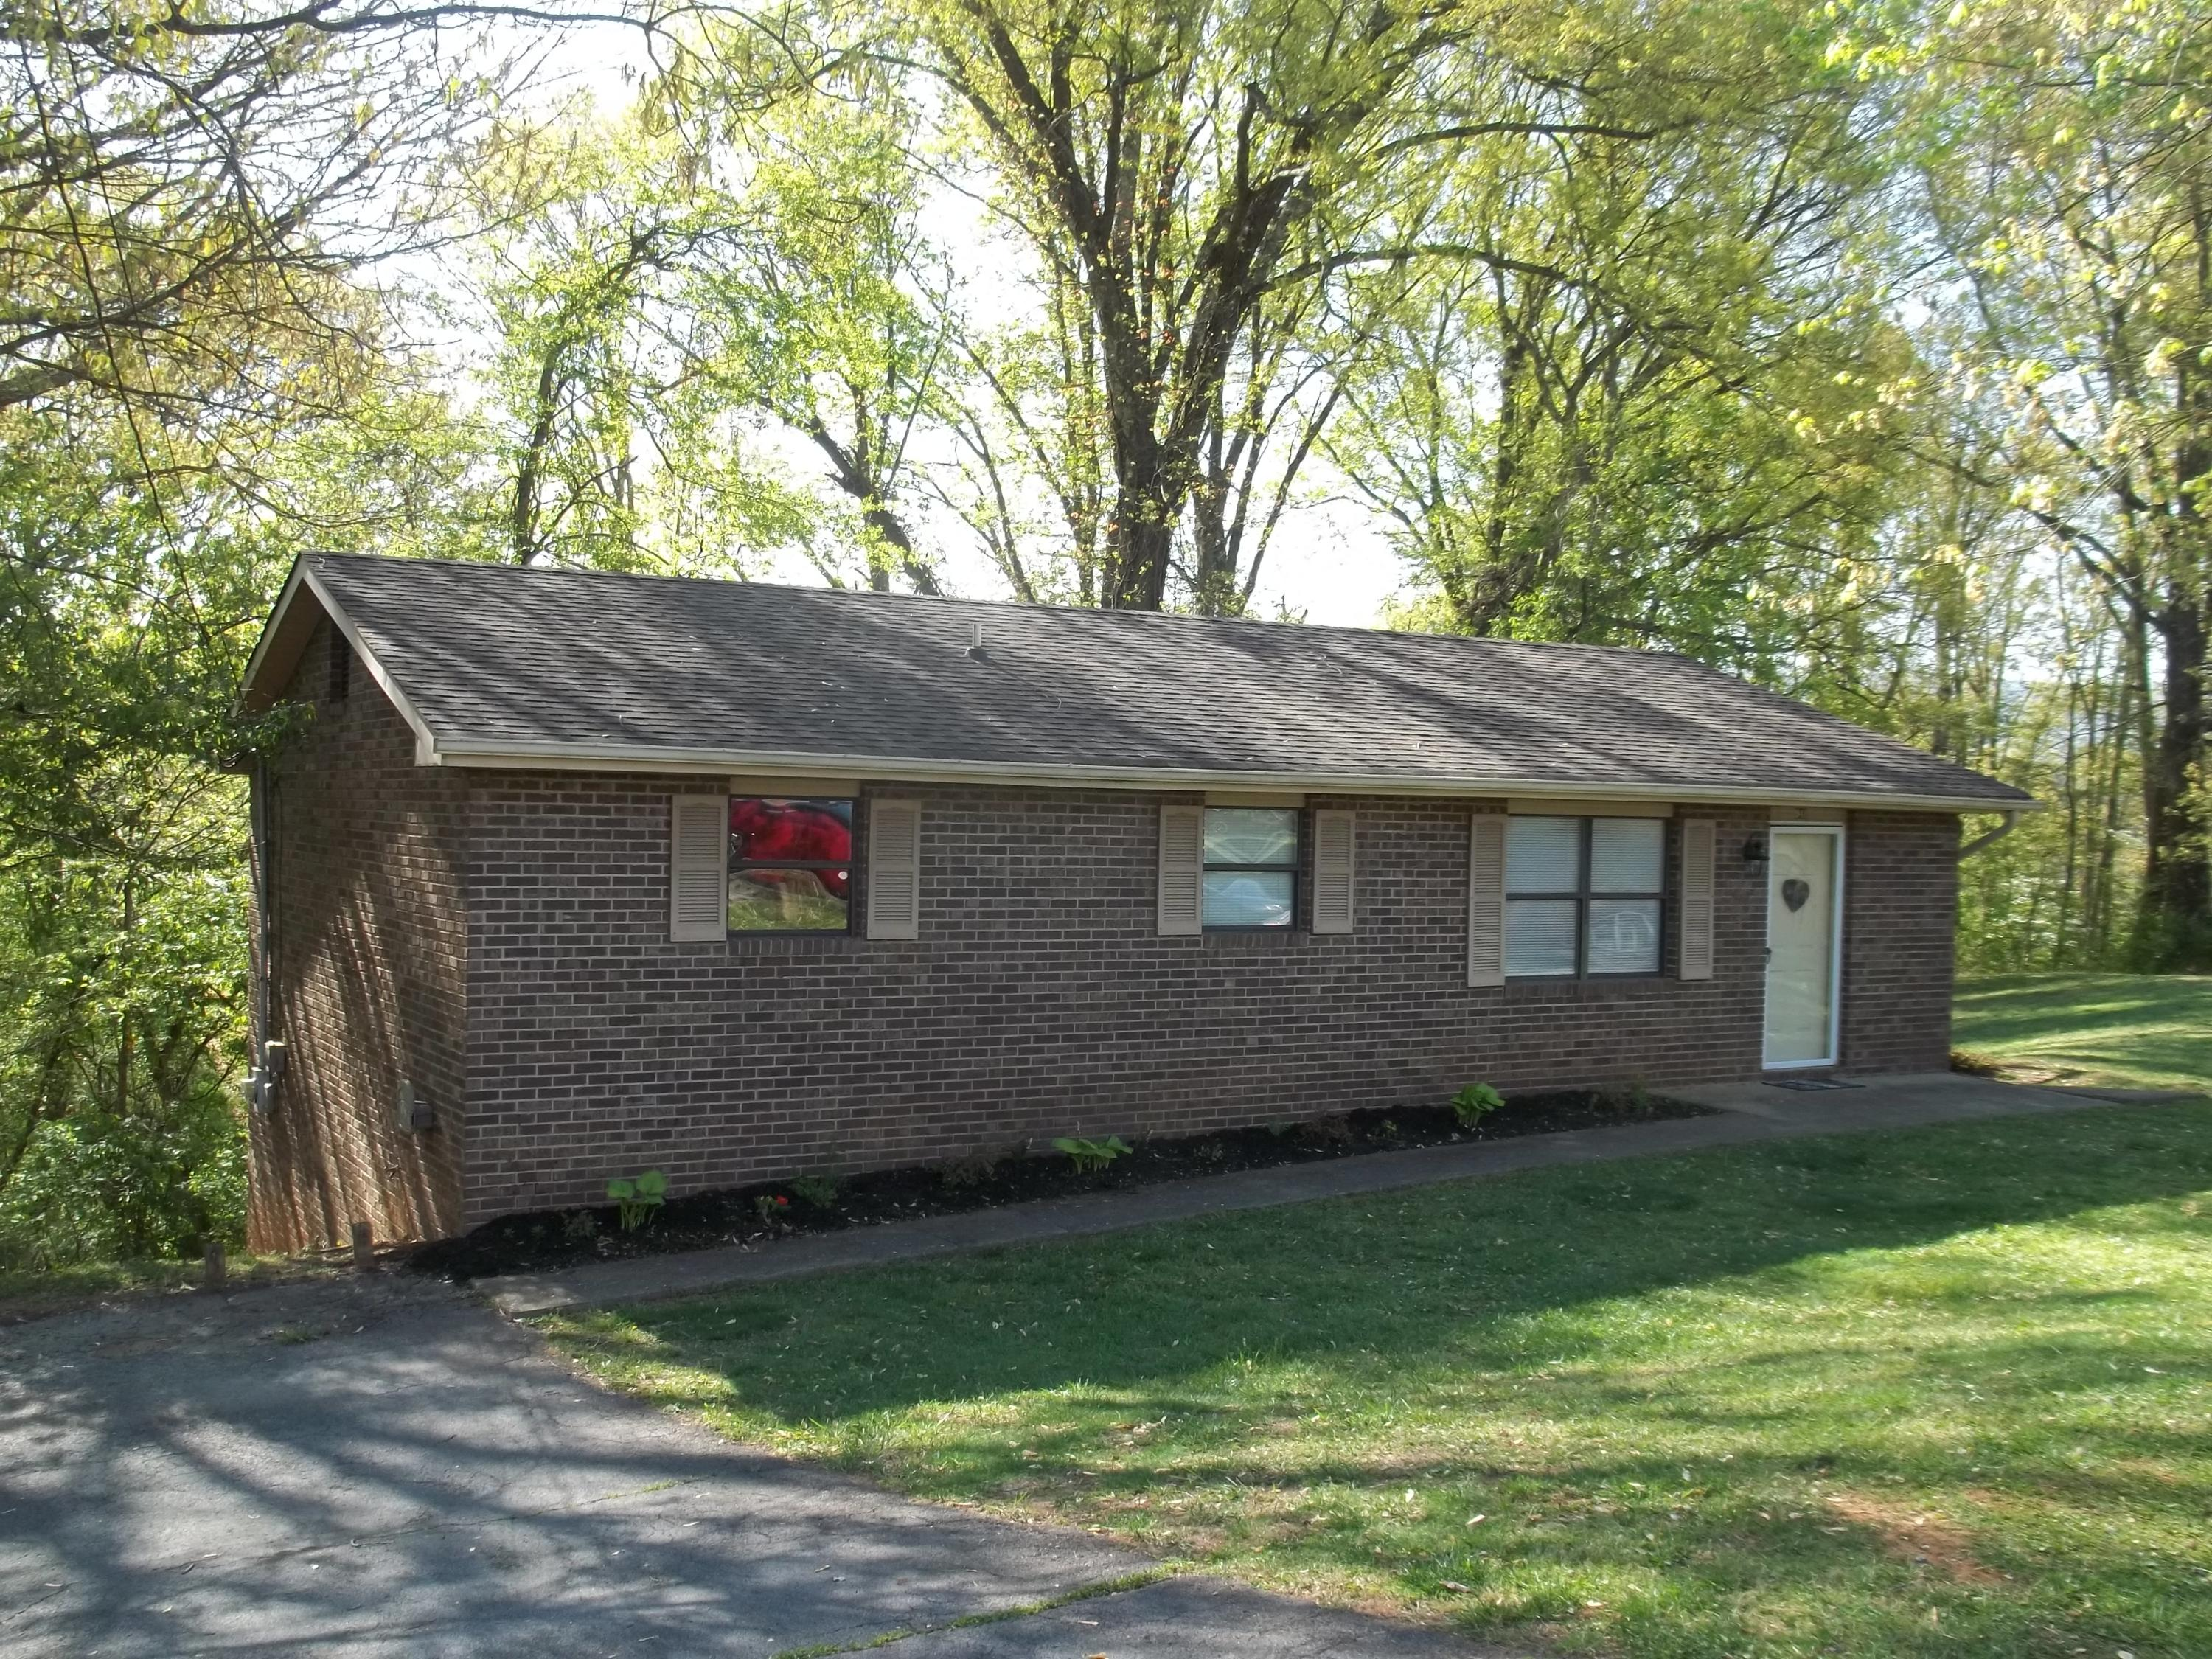 941 Ragle Street, Church Hill, Tennessee 37642, 3 Bedrooms Bedrooms, ,2 BathroomsBathrooms,Single Family,For Sale,941 Ragle Street,9921213